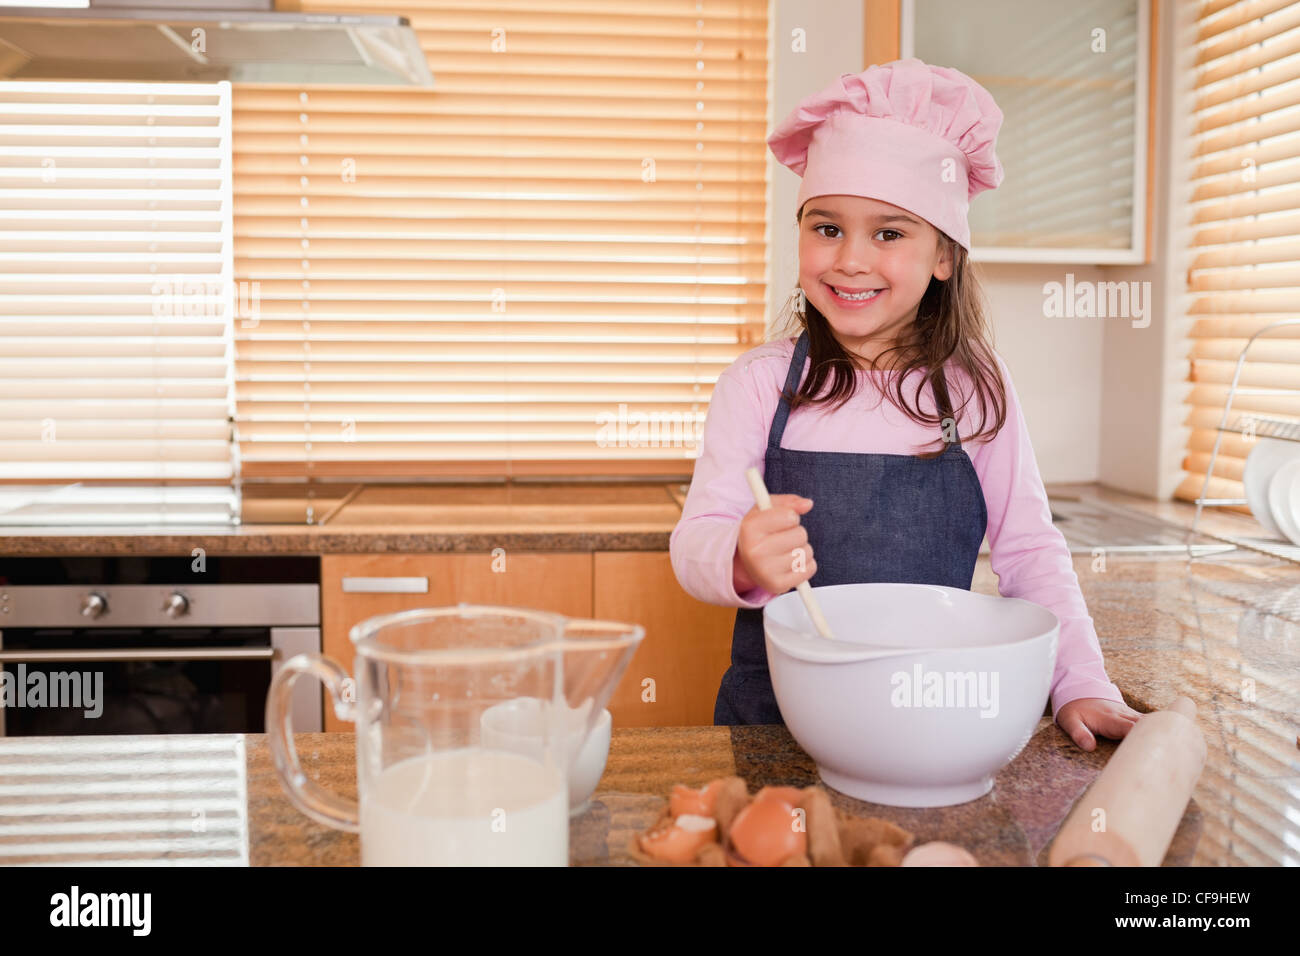 Cute Girl Chef Immagini   Cute Girl Chef Fotos Stock - Alamy 9432dfdbac07